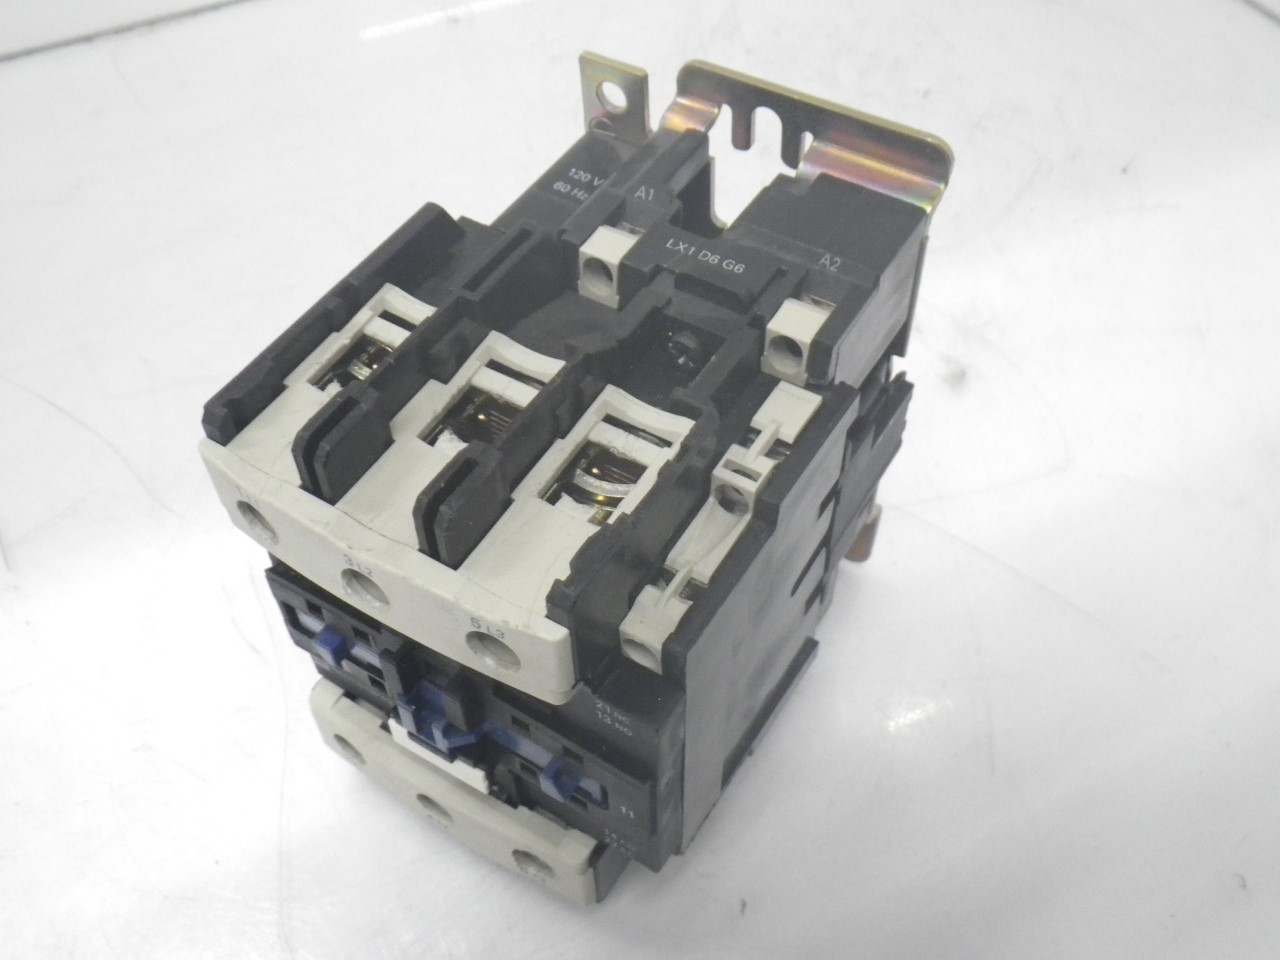 IMGP8343125A, 600V (18)LC1D8011 Telemecanique Contactor Magnetic Power Relay 125a, 600v (Used Tested)